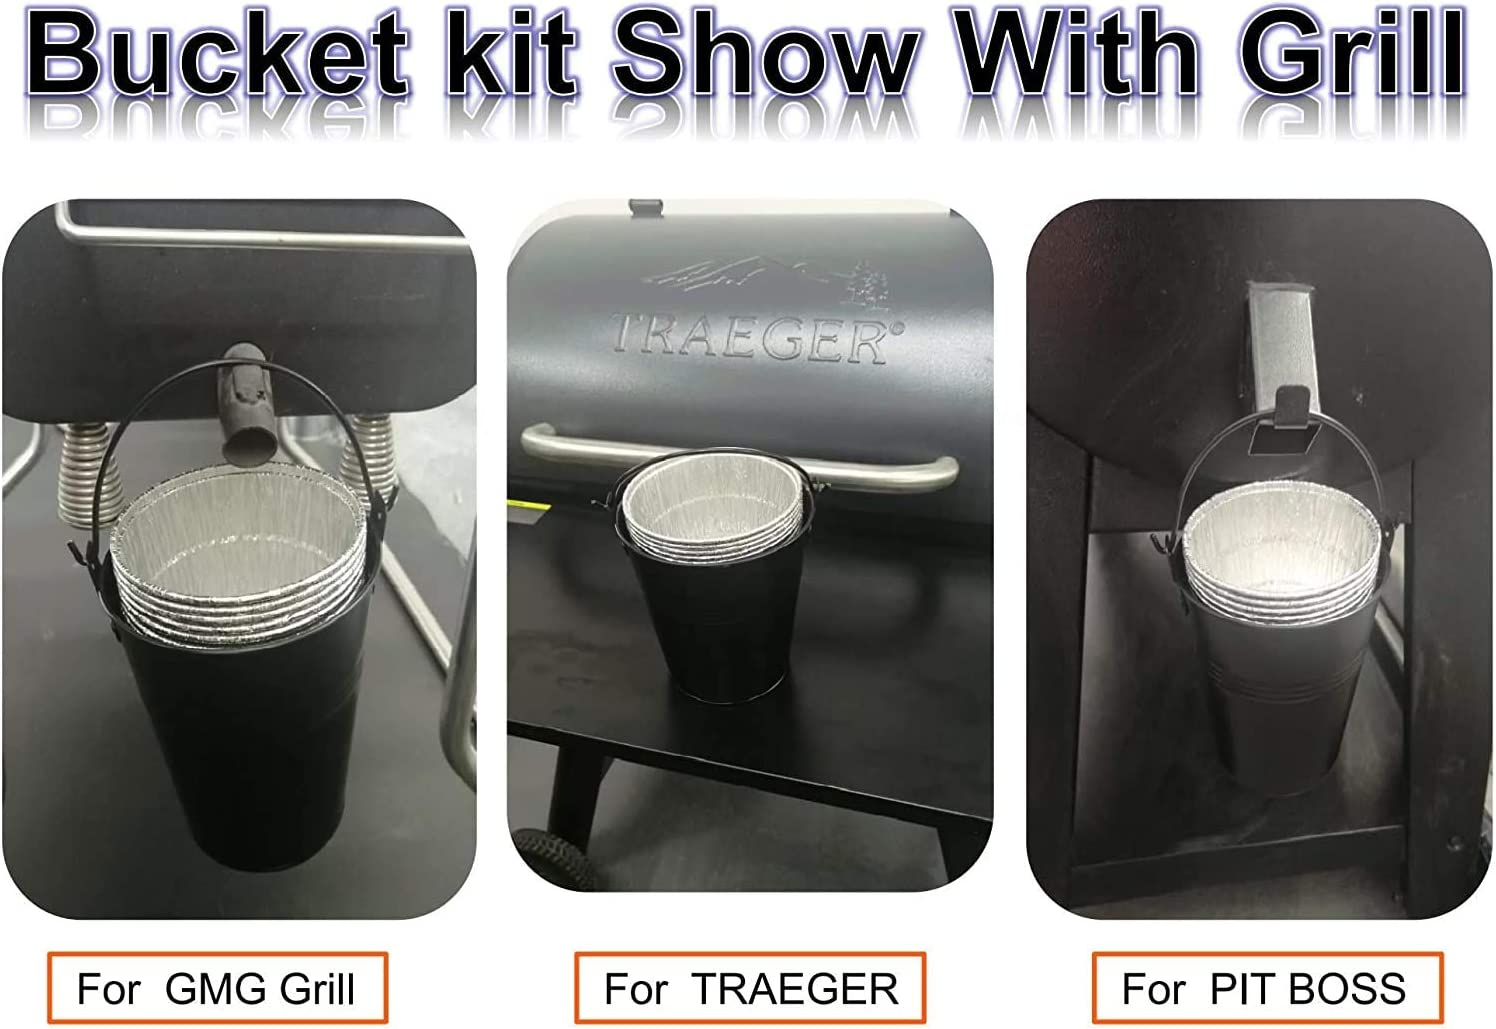 BIG PART Black Grease Drip Bucket with12-Pack Disposable Foil Liner Kit Replacement Parts for Oklahoma Joe's, Also Fits Most Wood Pellet Grill & Offset Smokers : Garden & Outdoor